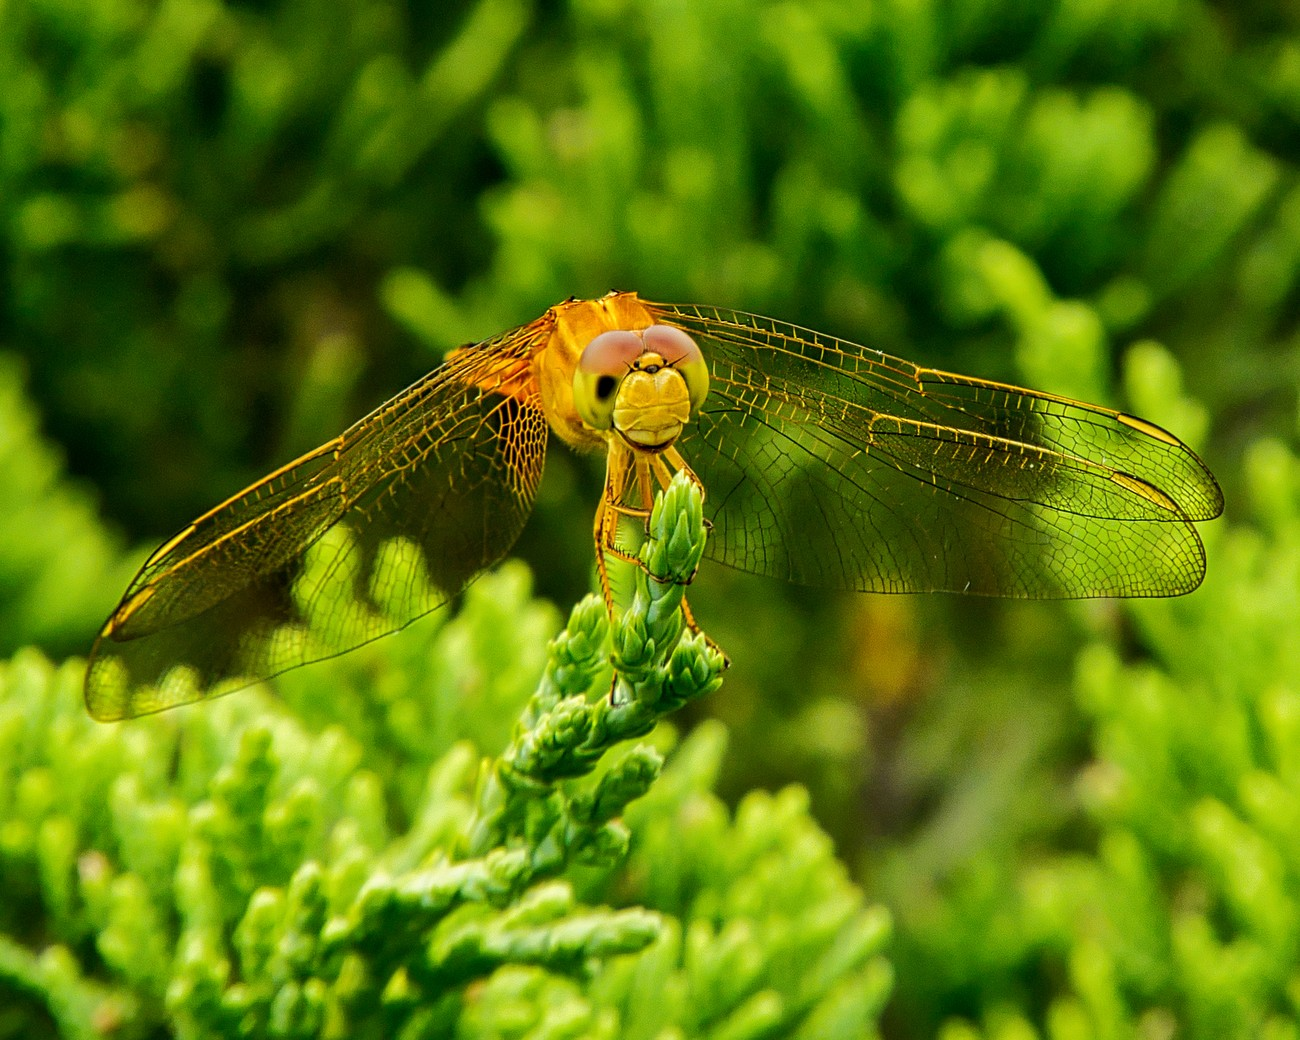 Female Scarlet Skimmer dragonfly photographed in my front yard in Sarasota, Florida